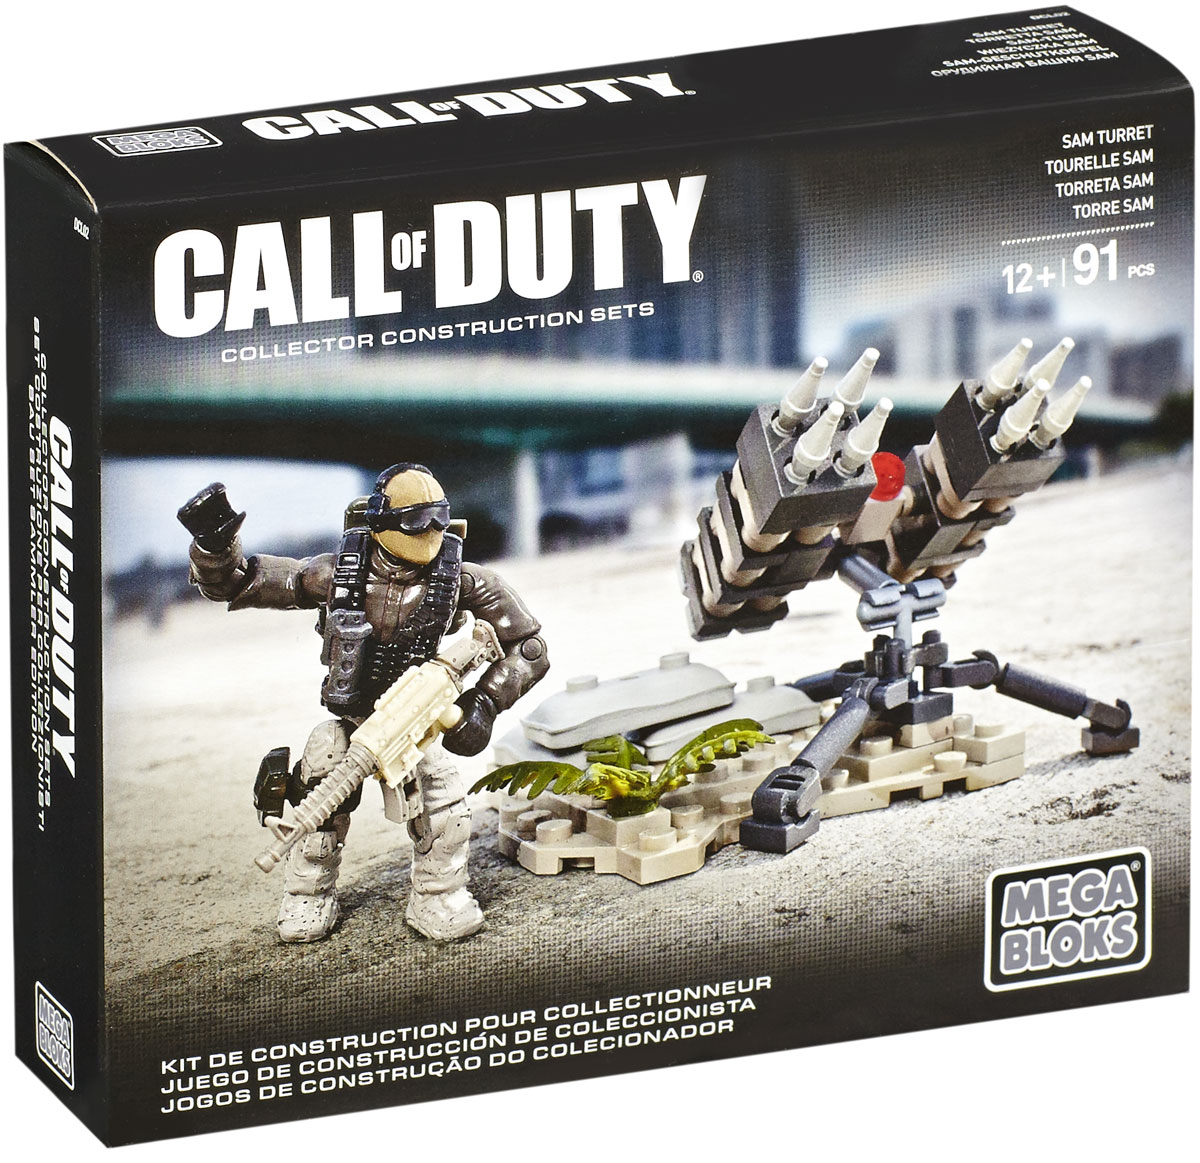 Mega Bloks Call Of Duty Конструктор Sam Turret - Конструкторы